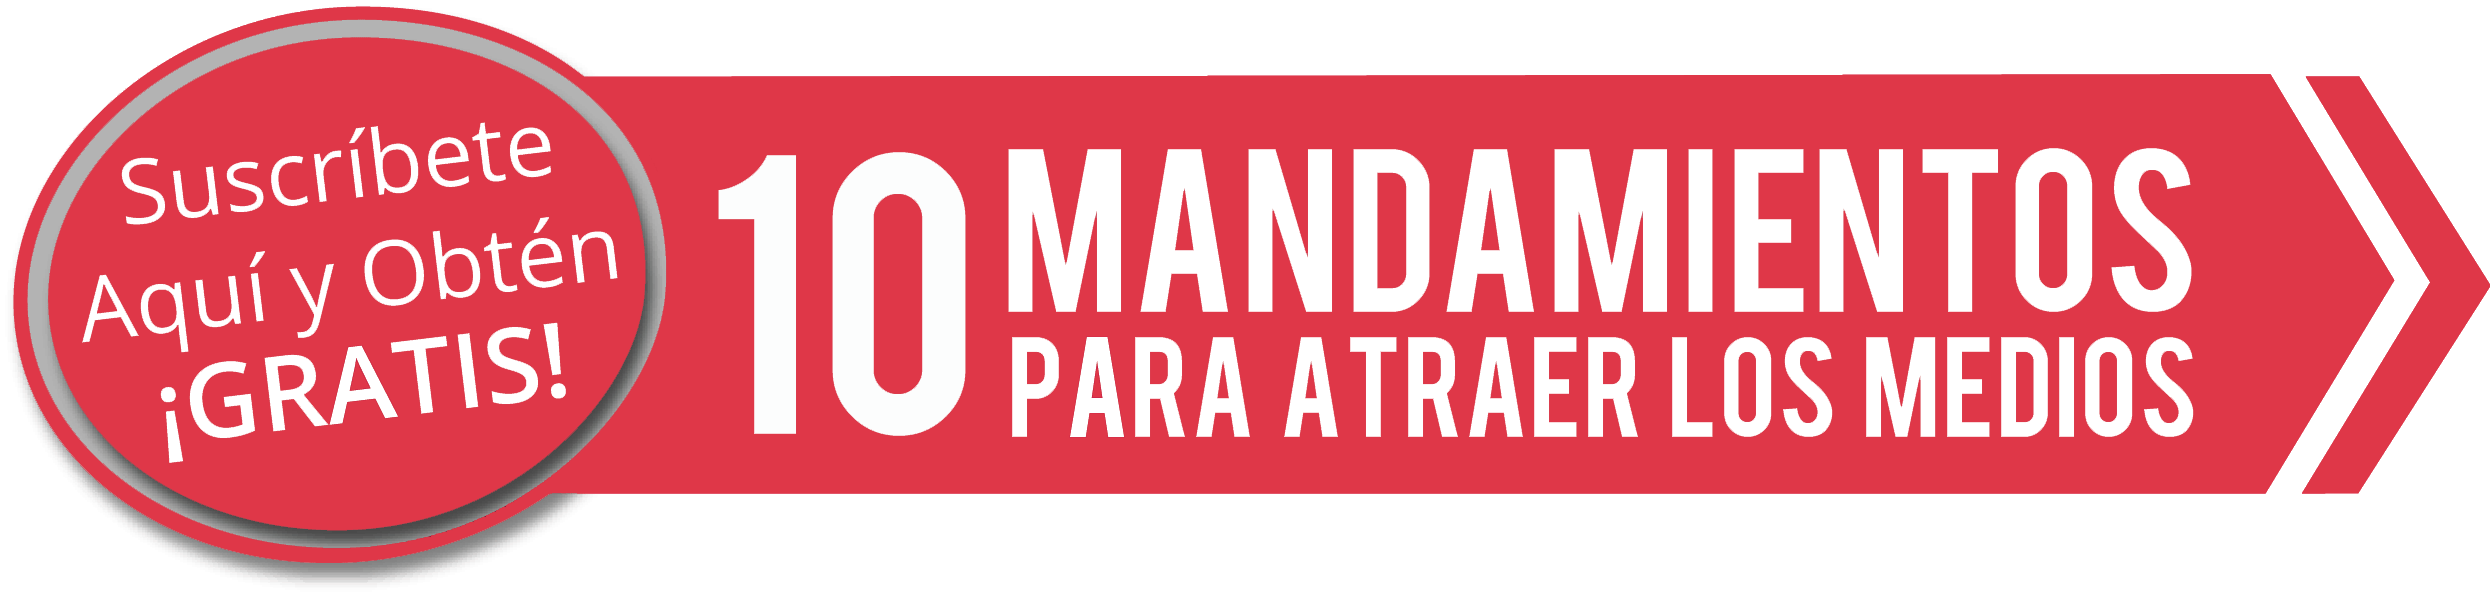 Inicio mari santana. Png suscribete jpg royalty free download